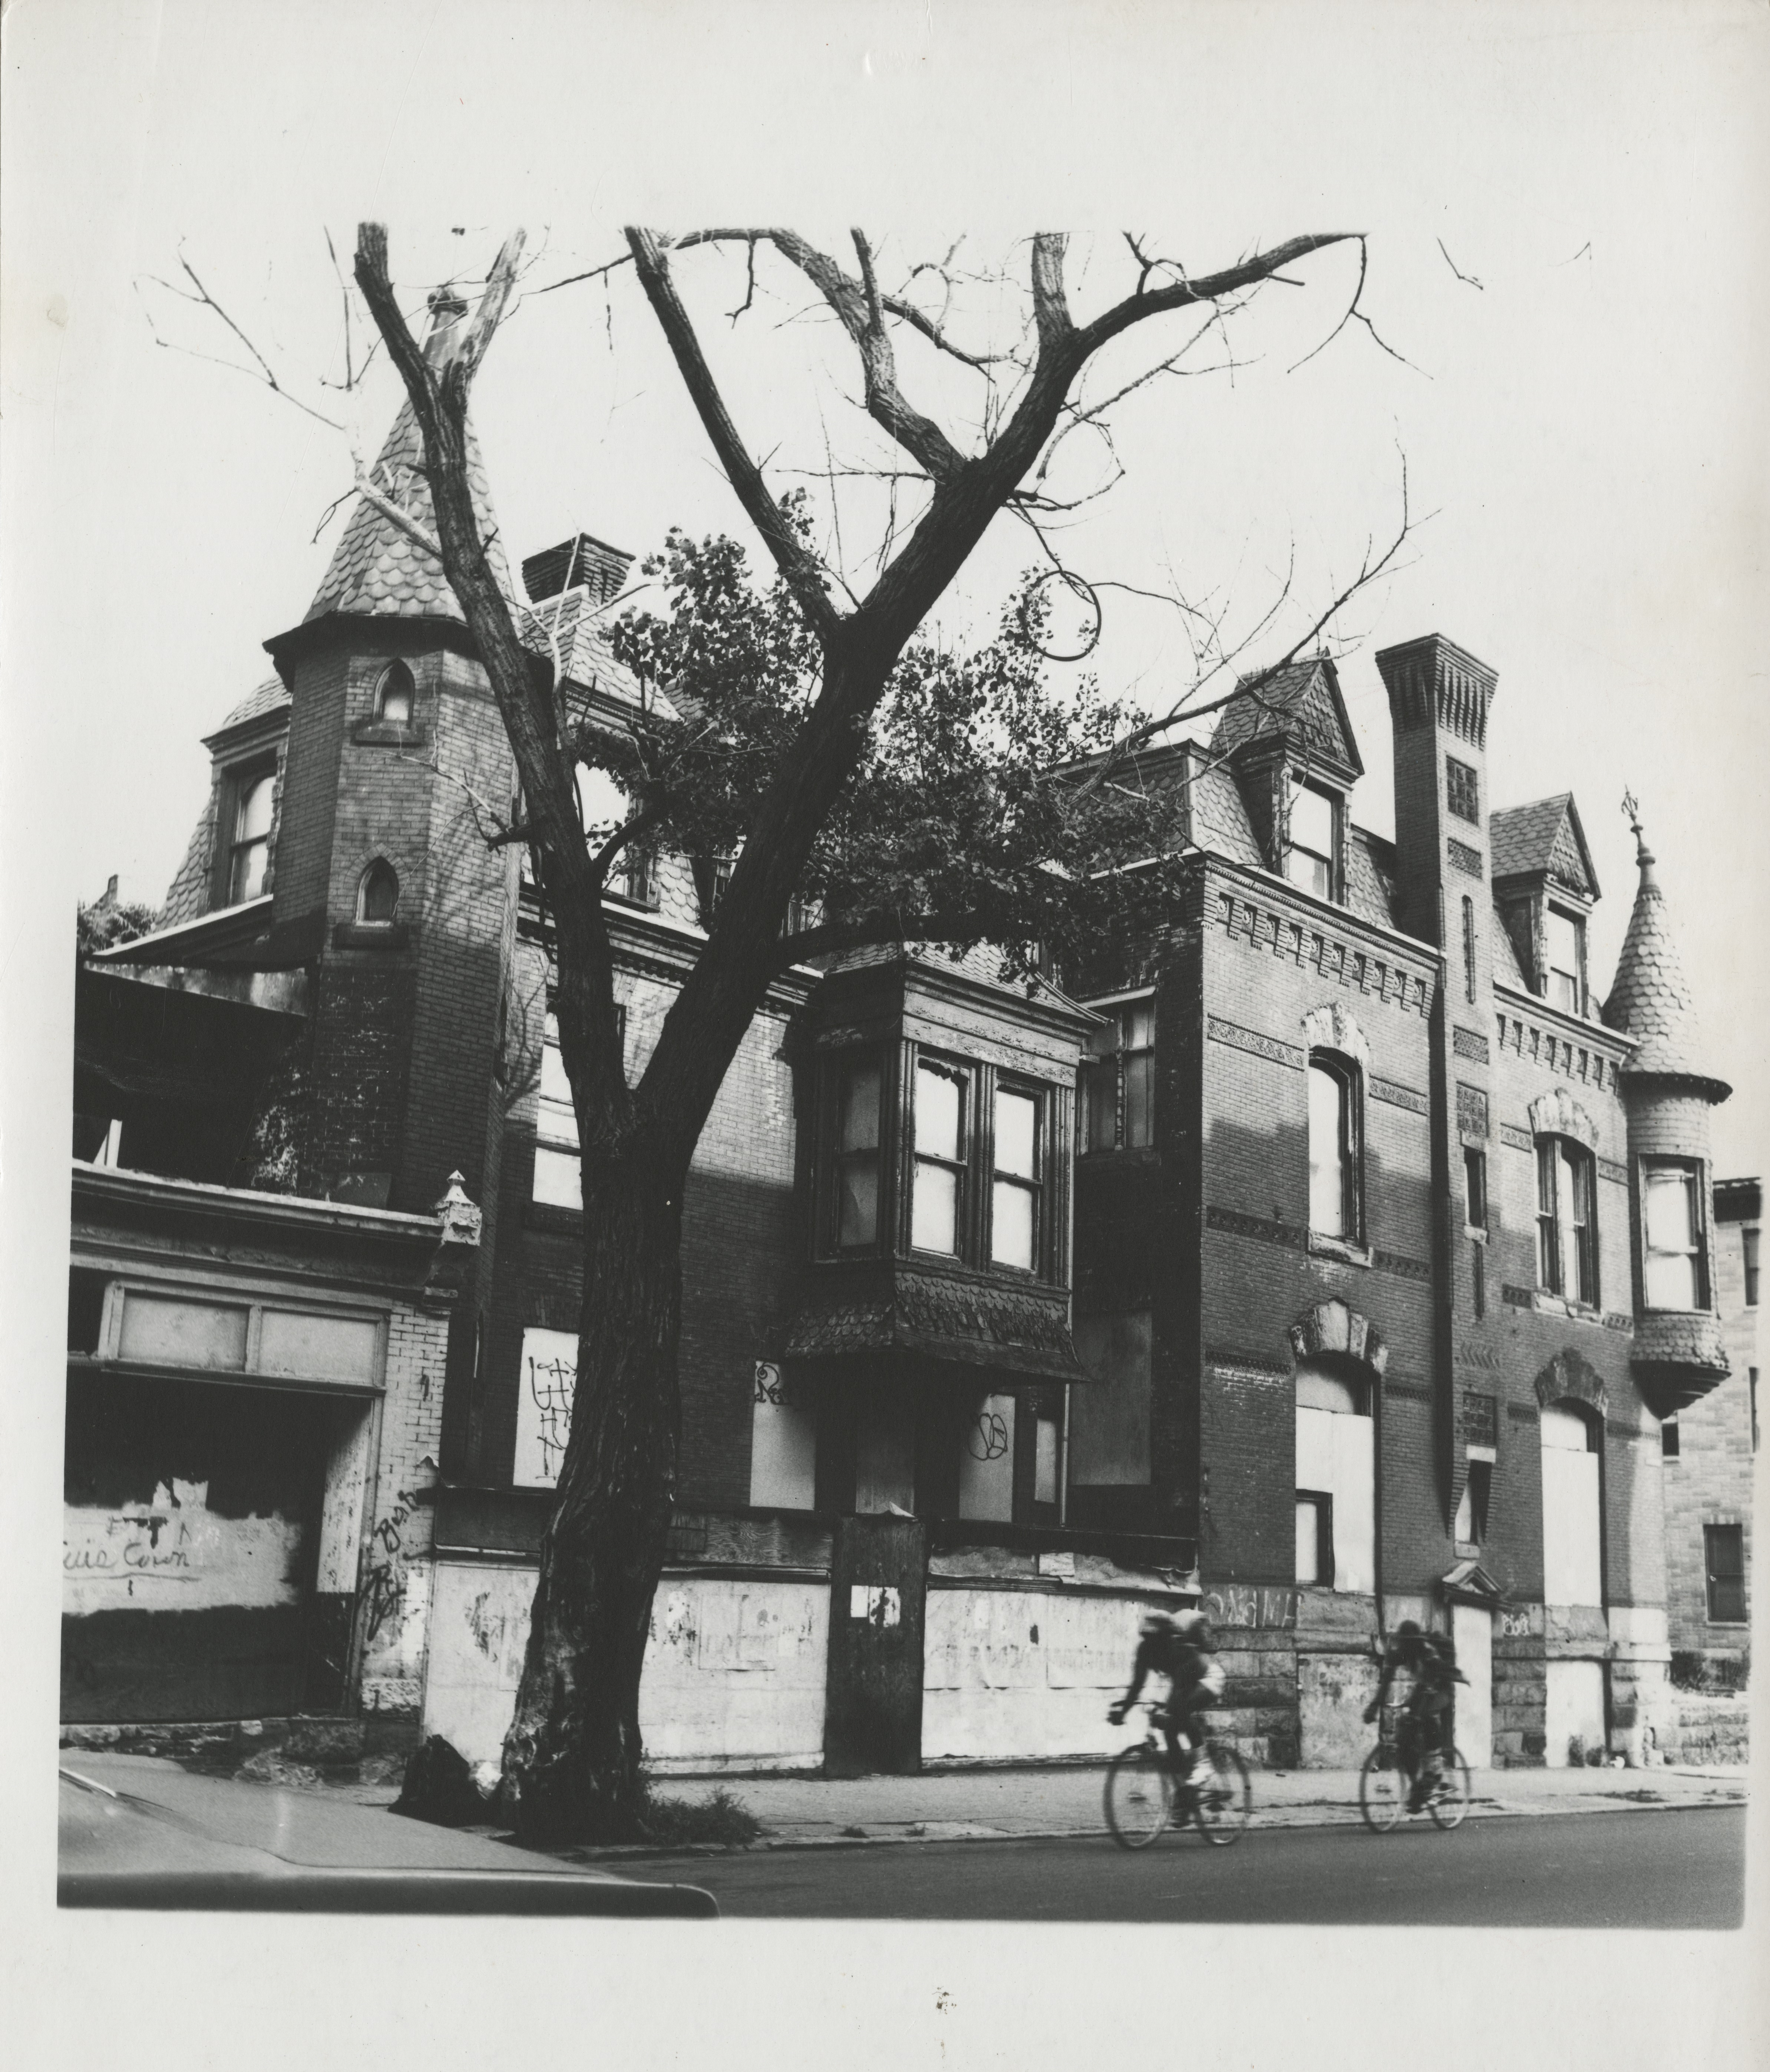 A West Philadelphia home with boarded windows and graffitied walls